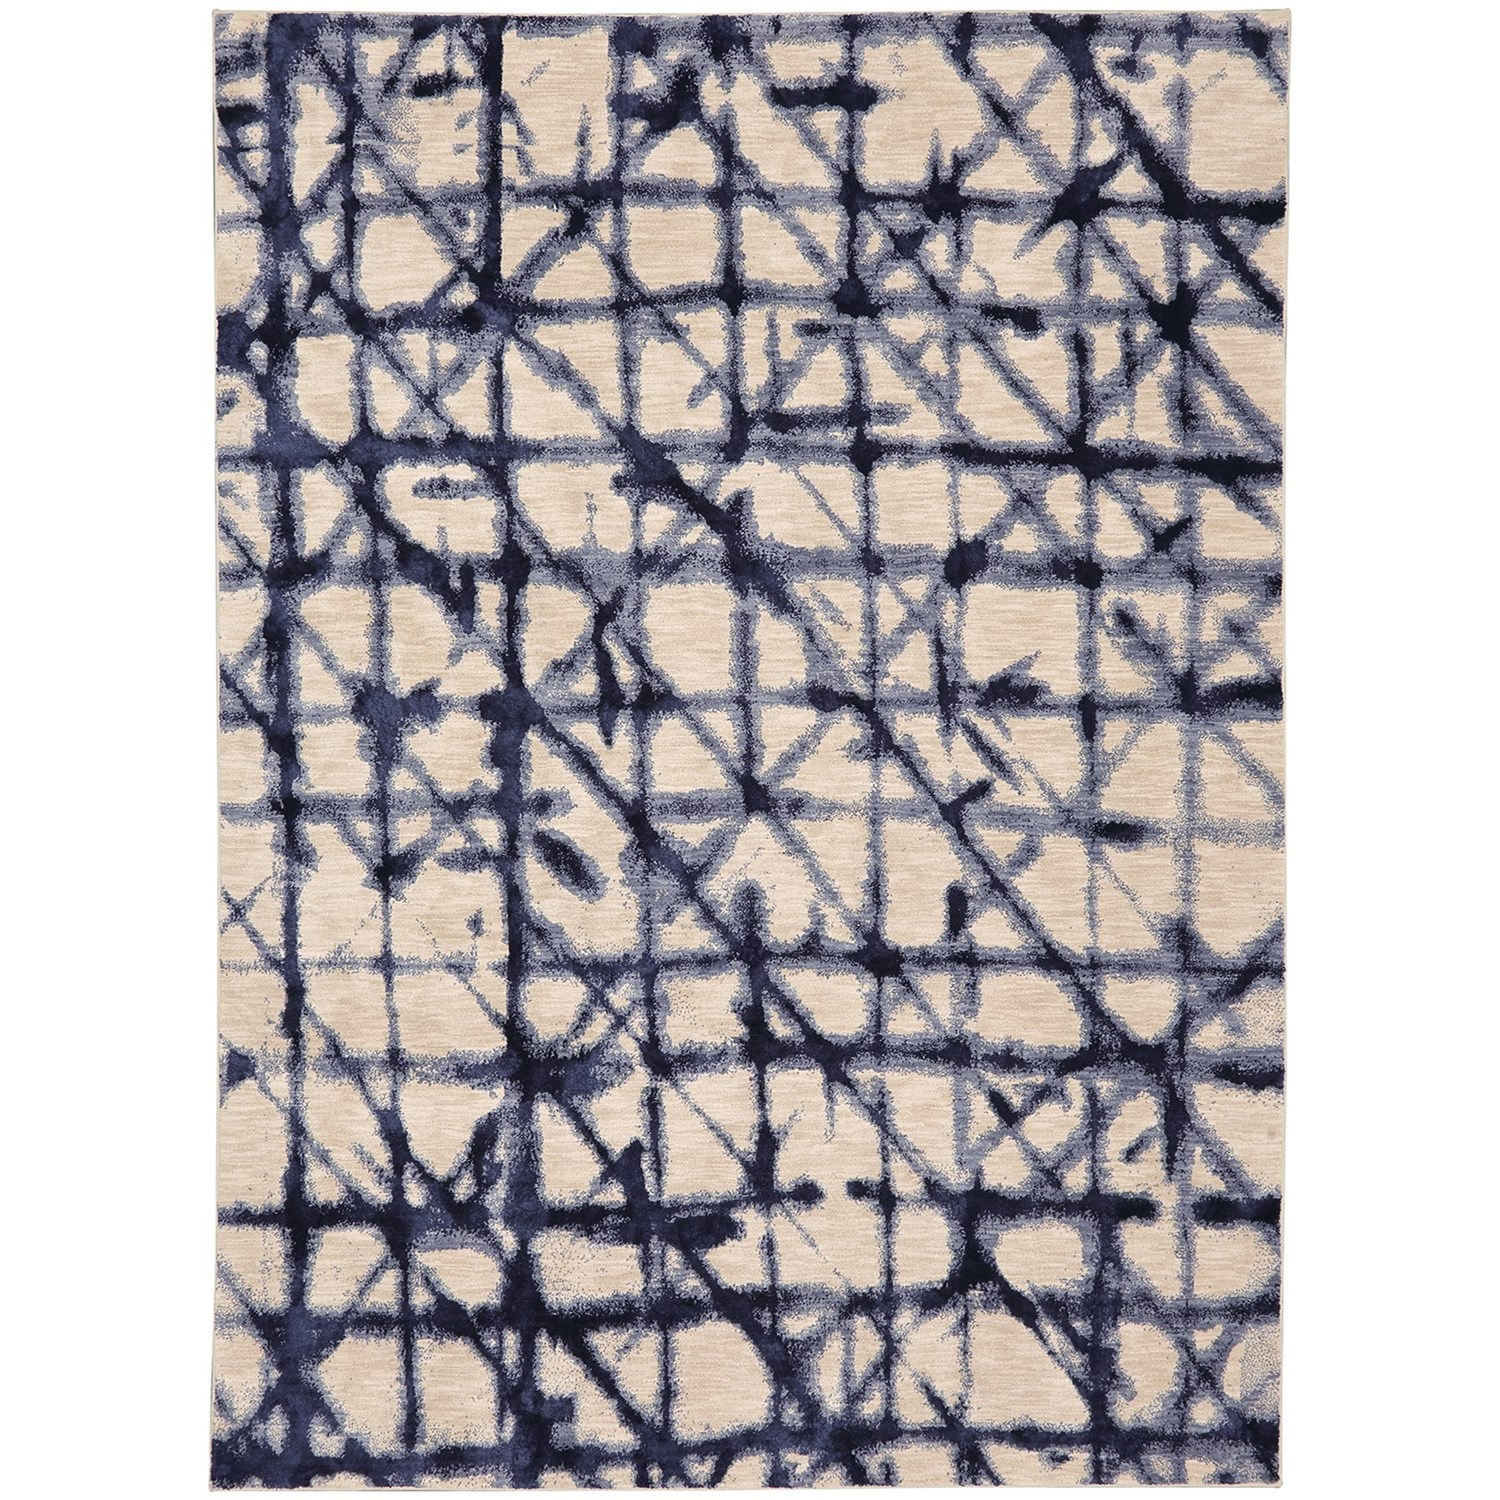 """Enigma 5' 3""""x7' 10"""" Rectangle Geometric Area Rug by Karastan Rugs at Darvin Furniture"""